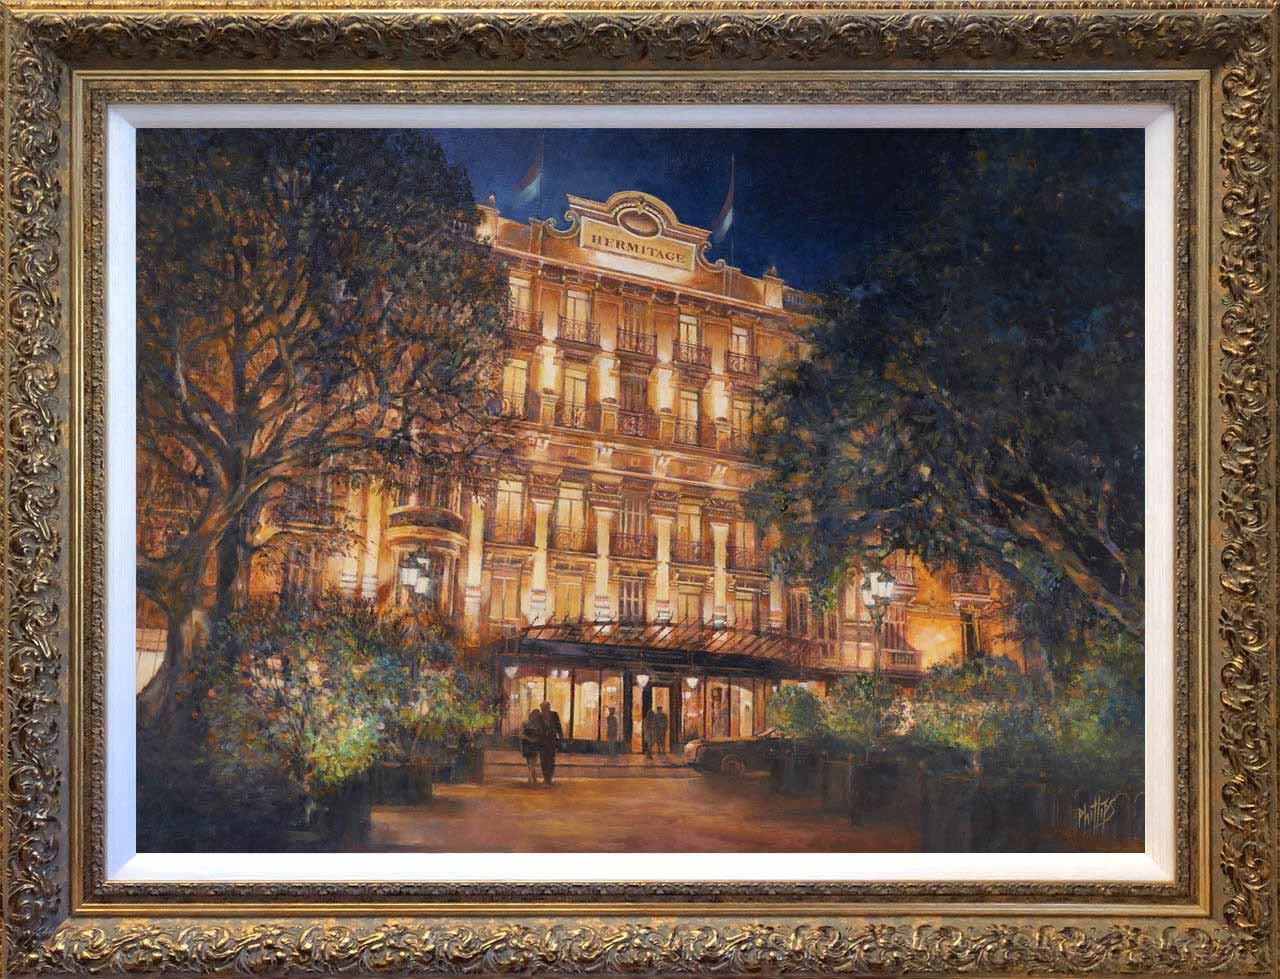 Painting of The Hermitage by Night